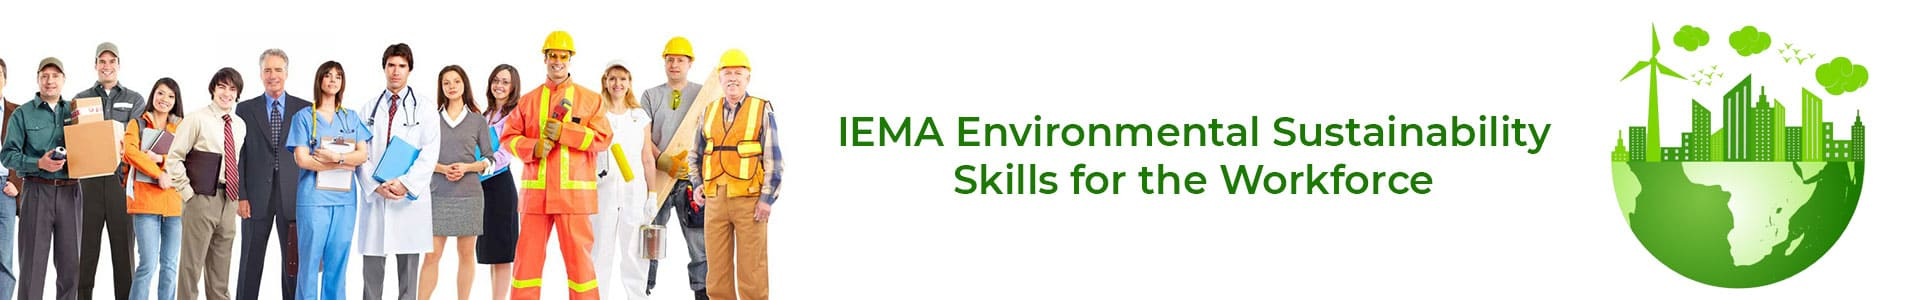 iema-environmental-sustainability-skills-for-the-workforce